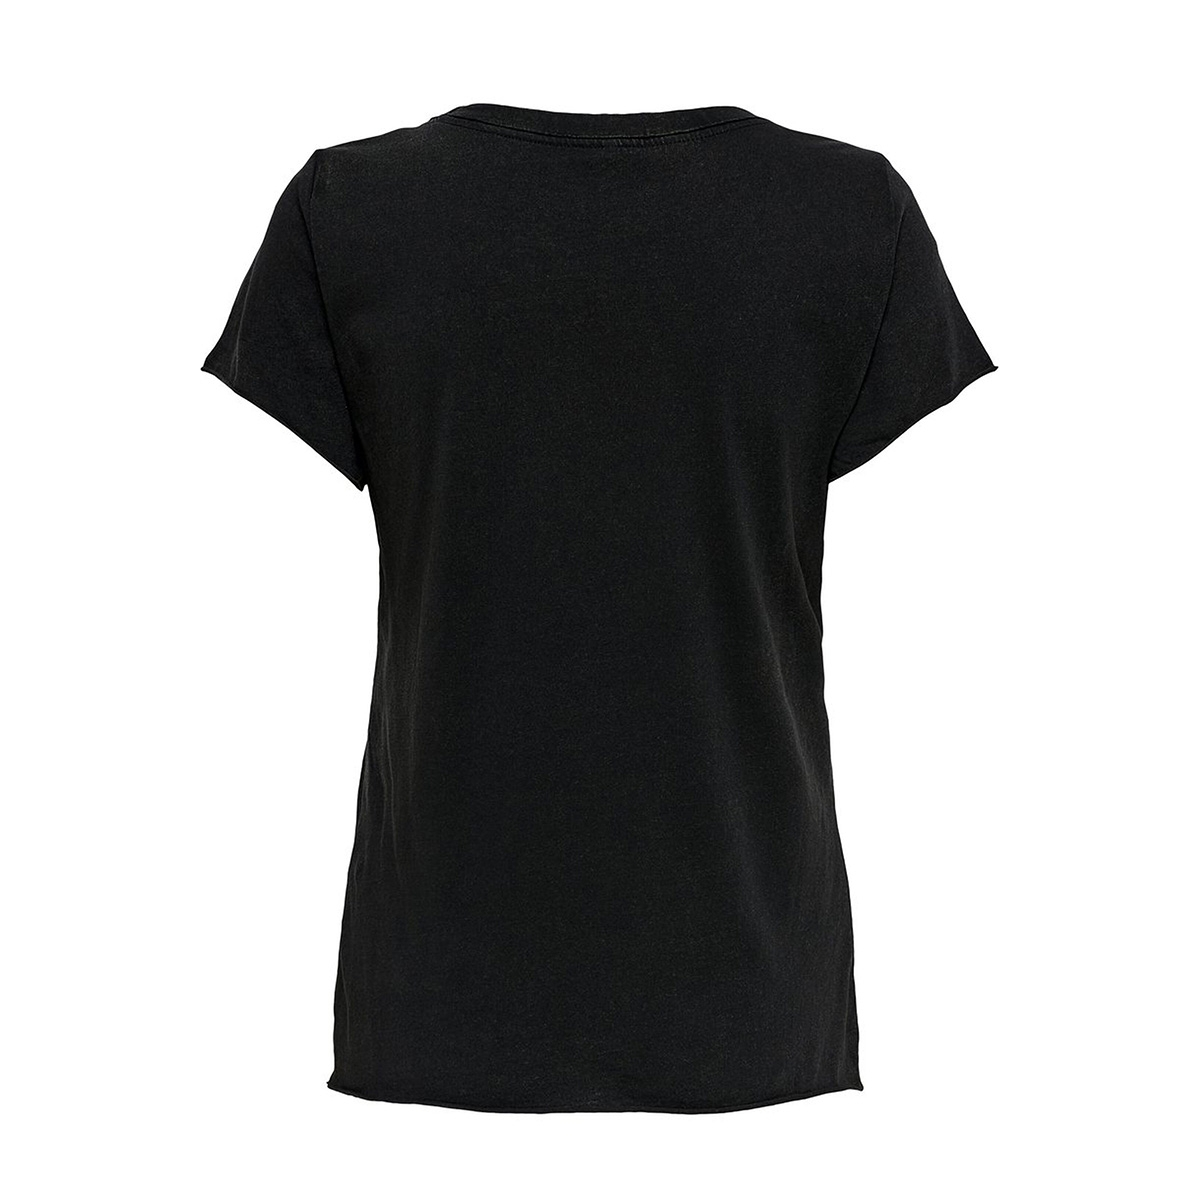 onllucy life fit s/s animal top box 15203582 only t-shirt black/born